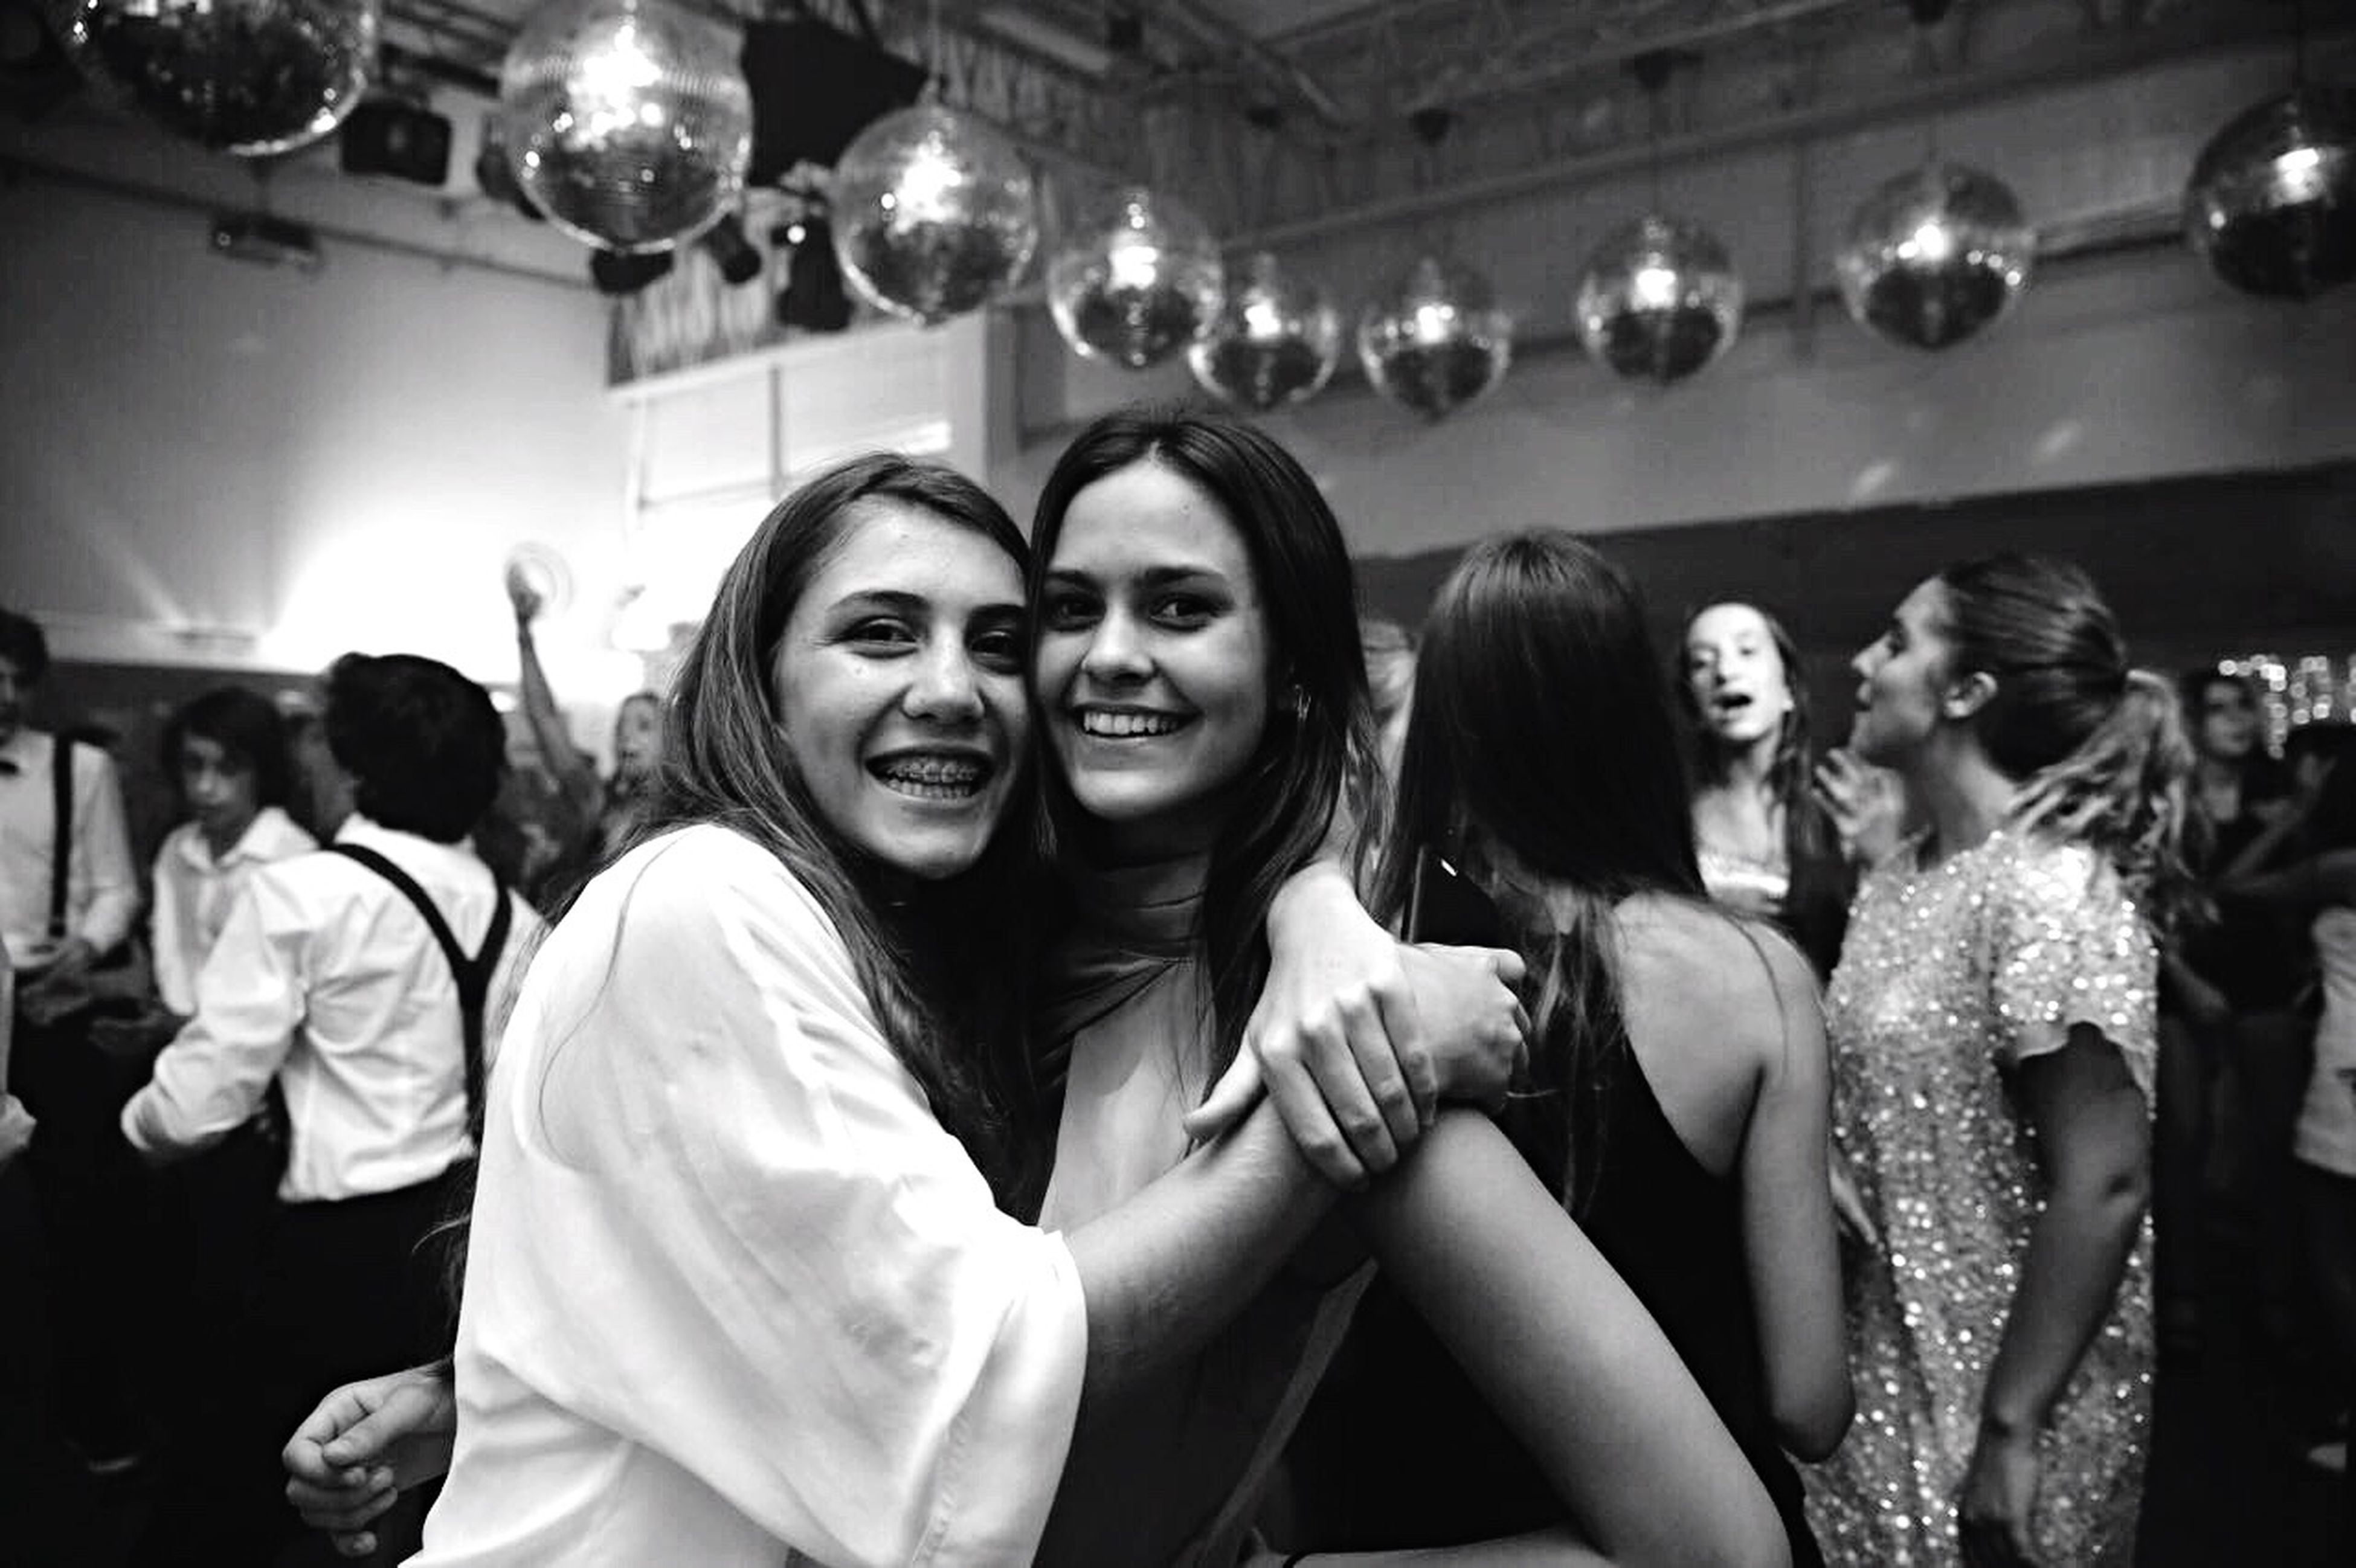 friendship, fun, leisure activity, real people, enjoyment, togetherness, smiling, happiness, lifestyles, night, indoors, nightlife, nightclub, portrait, young women, party - social event, young adult, glamour, looking at camera, cheerful, beautiful woman, bonding, people